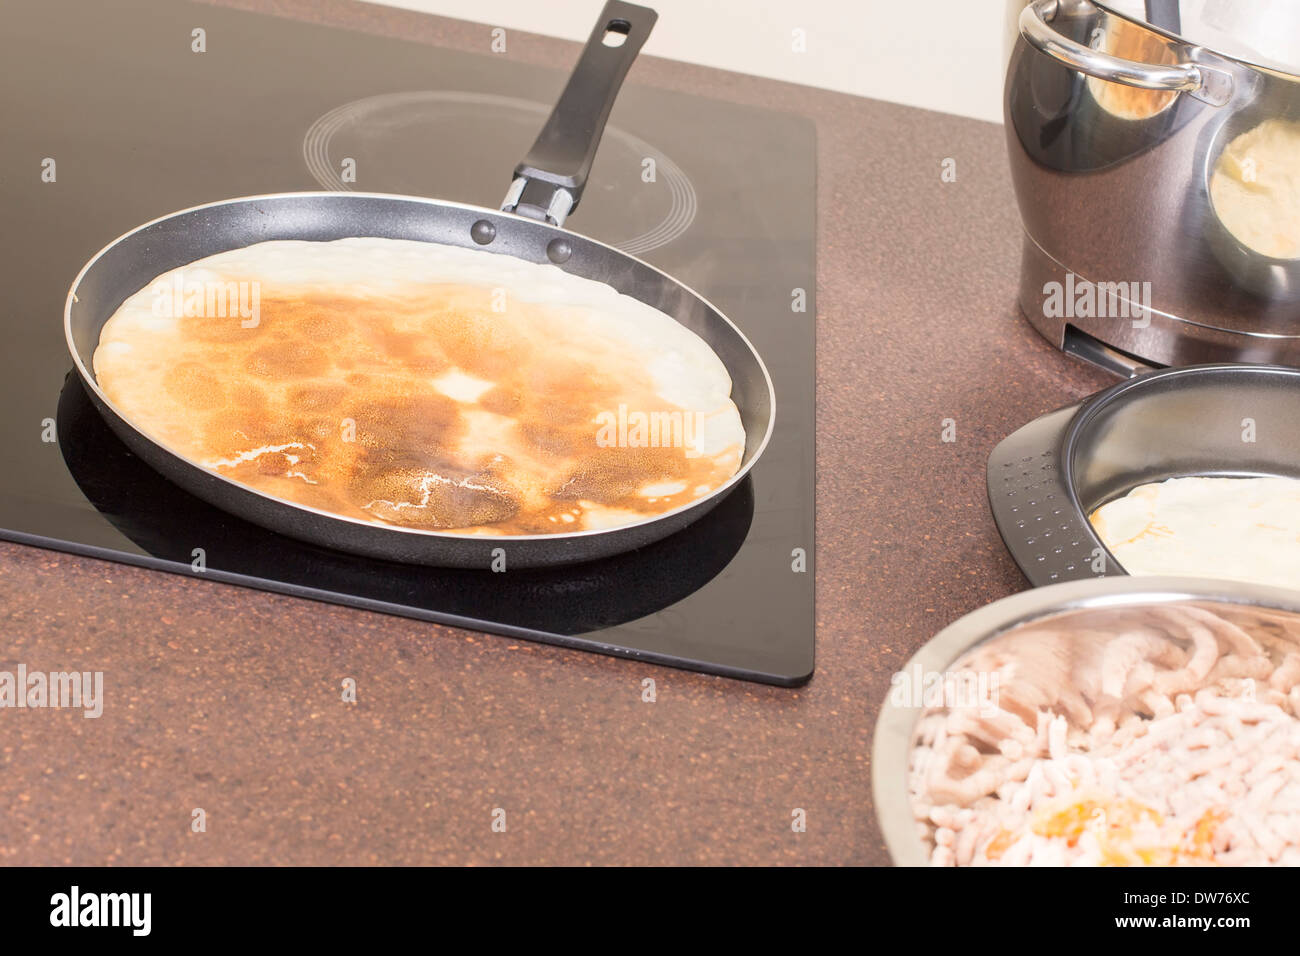 frying of pancakes on ceramic plate - Stock Image